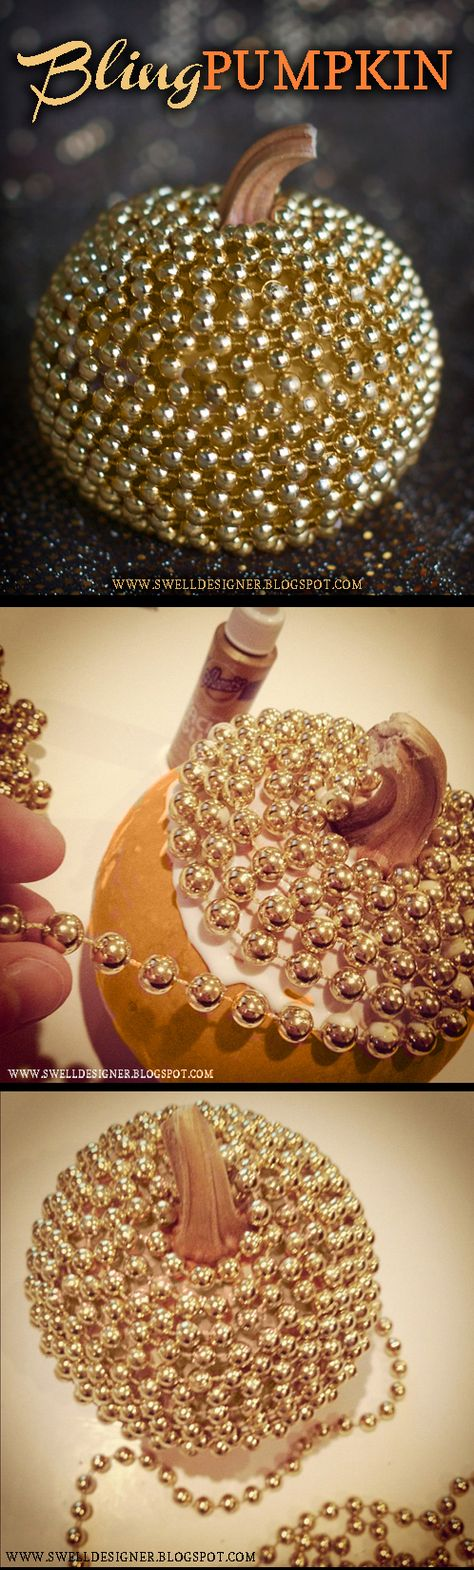 DIY: Make a cool and stylish metallic Bling Pumpkin in no time using tacky glue. gold paint & a string of gold mardi gras beads.  Such a sophisticated look that screams upscale, don't you think?  Here's how you make it! Tutorial